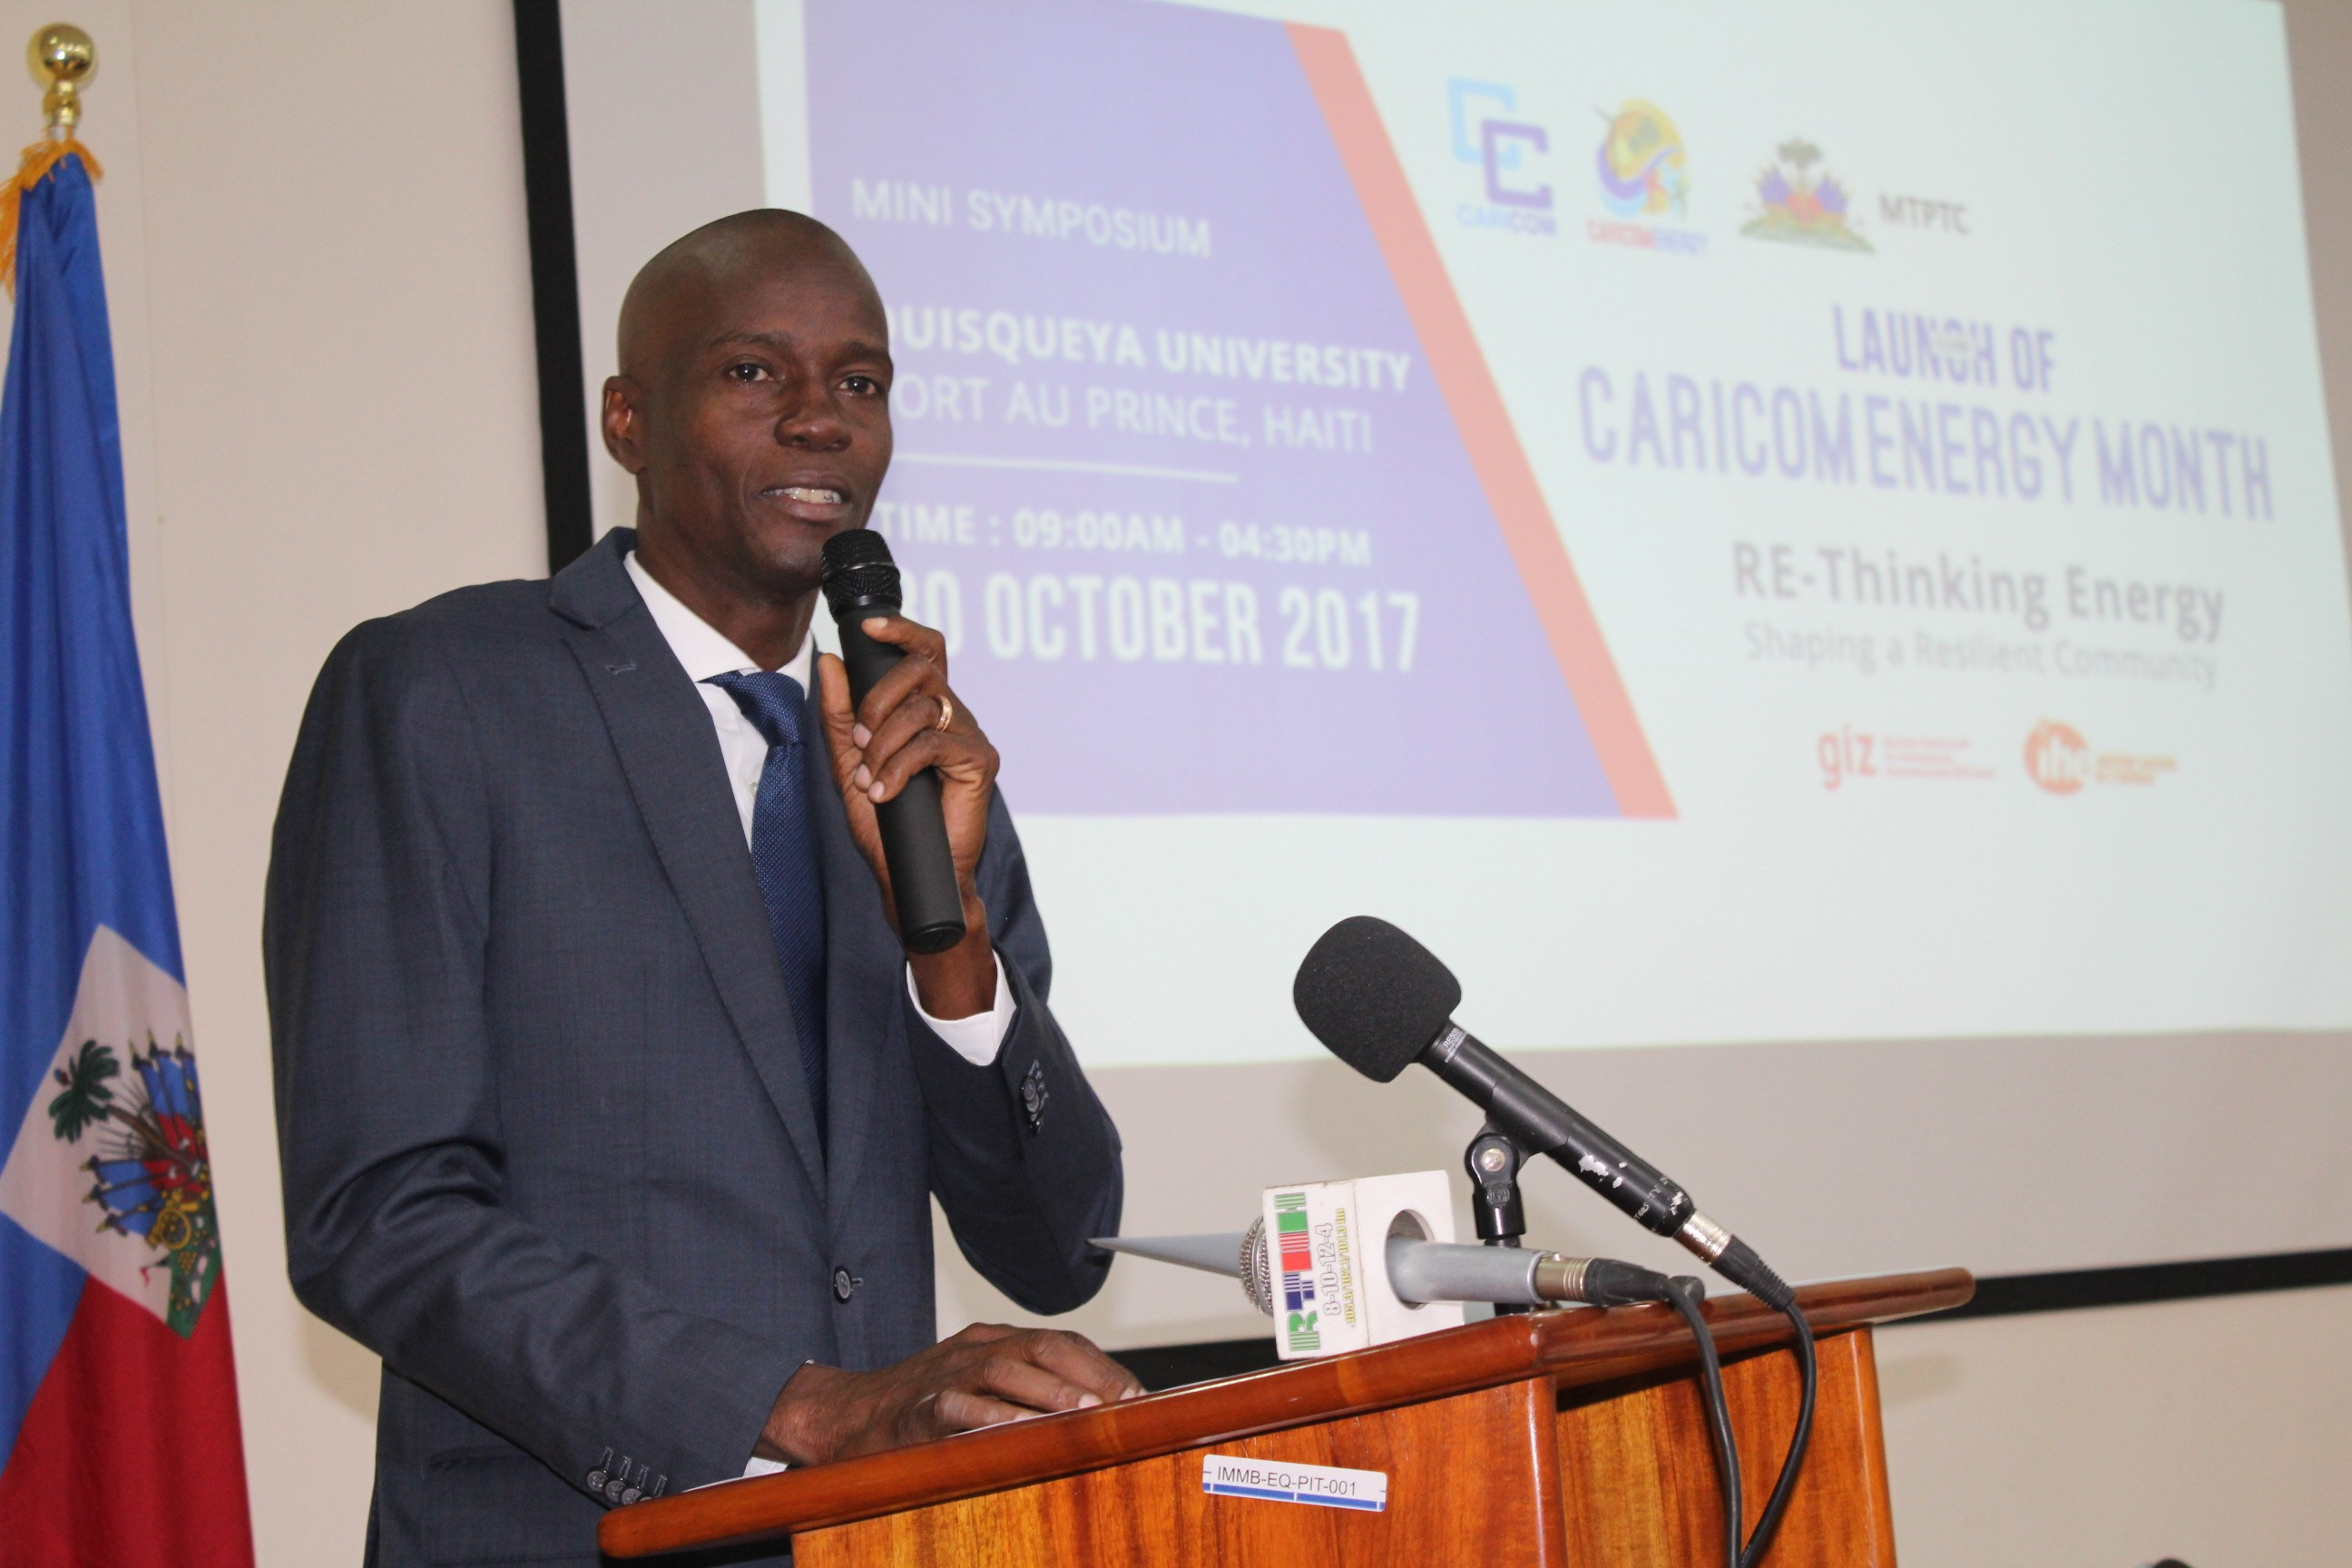 FLASHBACK: President of Haiti, His Excellency Jovenel Moise addressing the launch of CEM last year